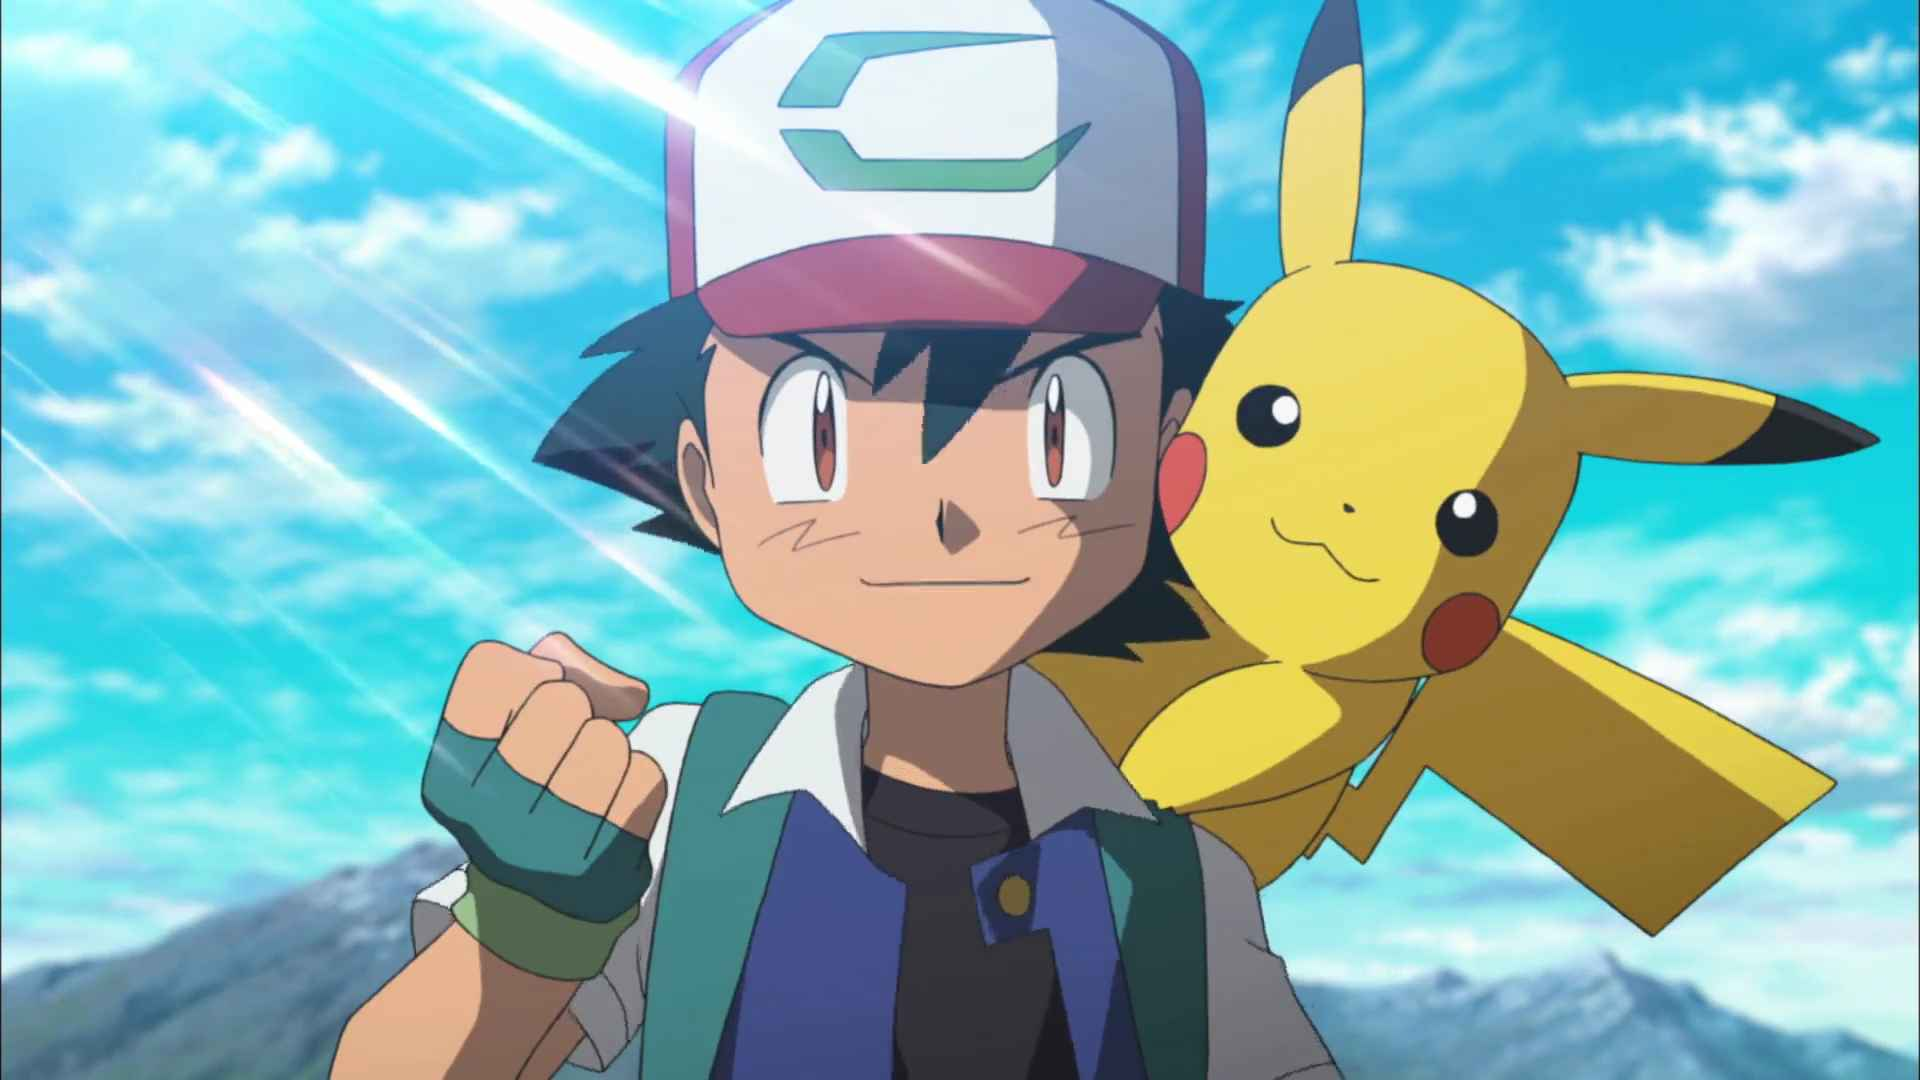 A new core Pokemon game is projected to release in 2019